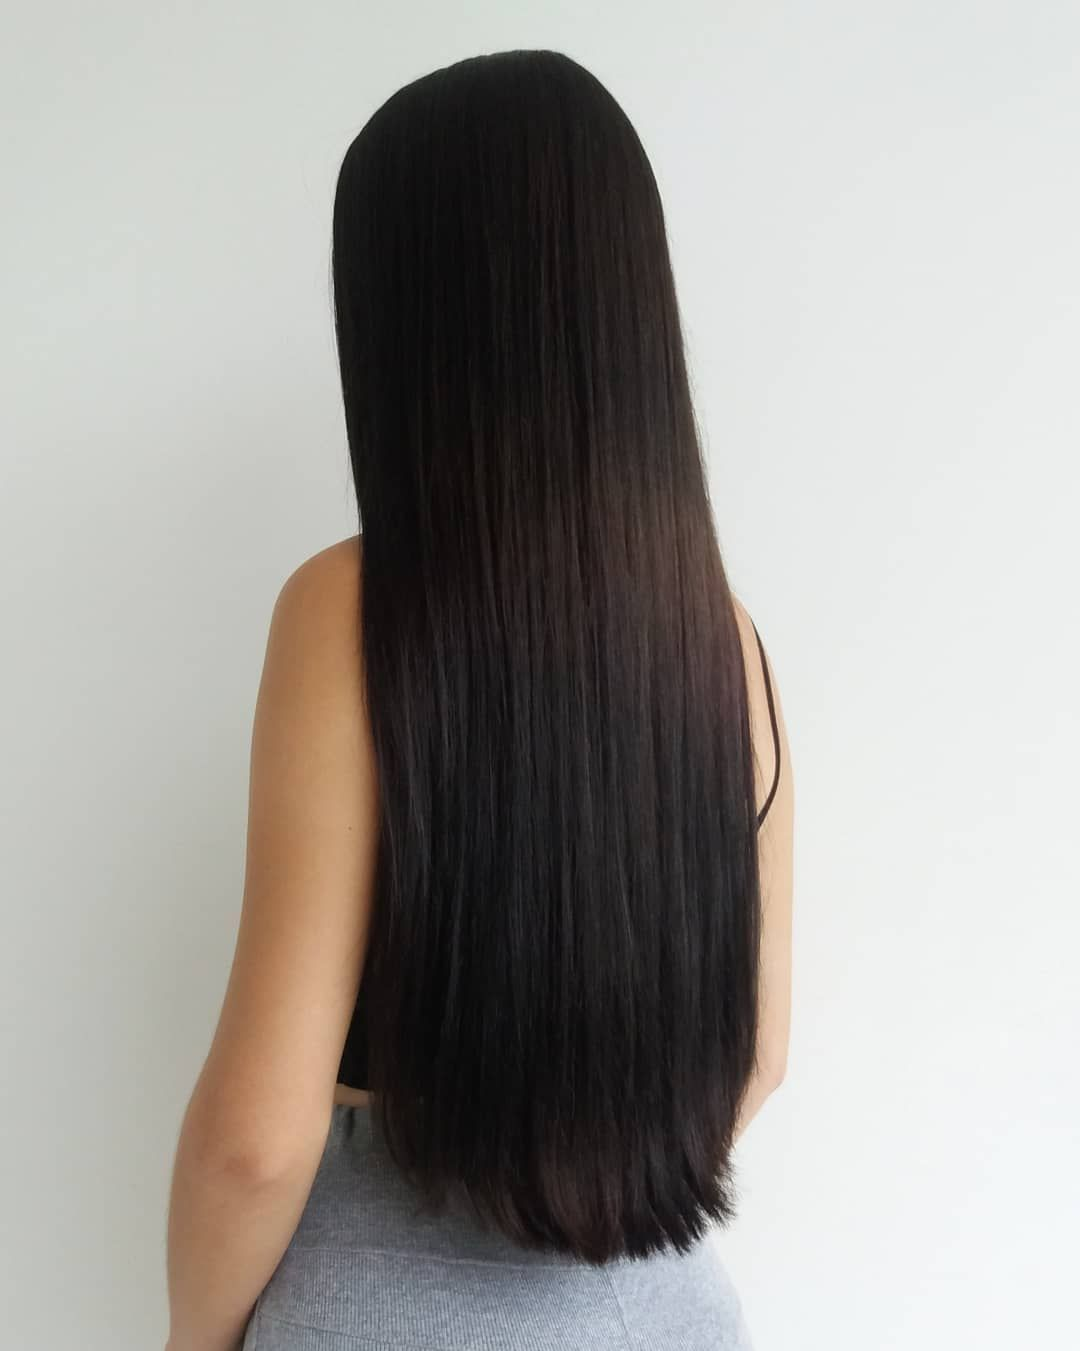 Hairstyles For Long Faces Some Hairstyles For Straight Hair Haircuts For Straight Hair With Layers Long Dark Hair Long Straight Hair Long Hair Styles